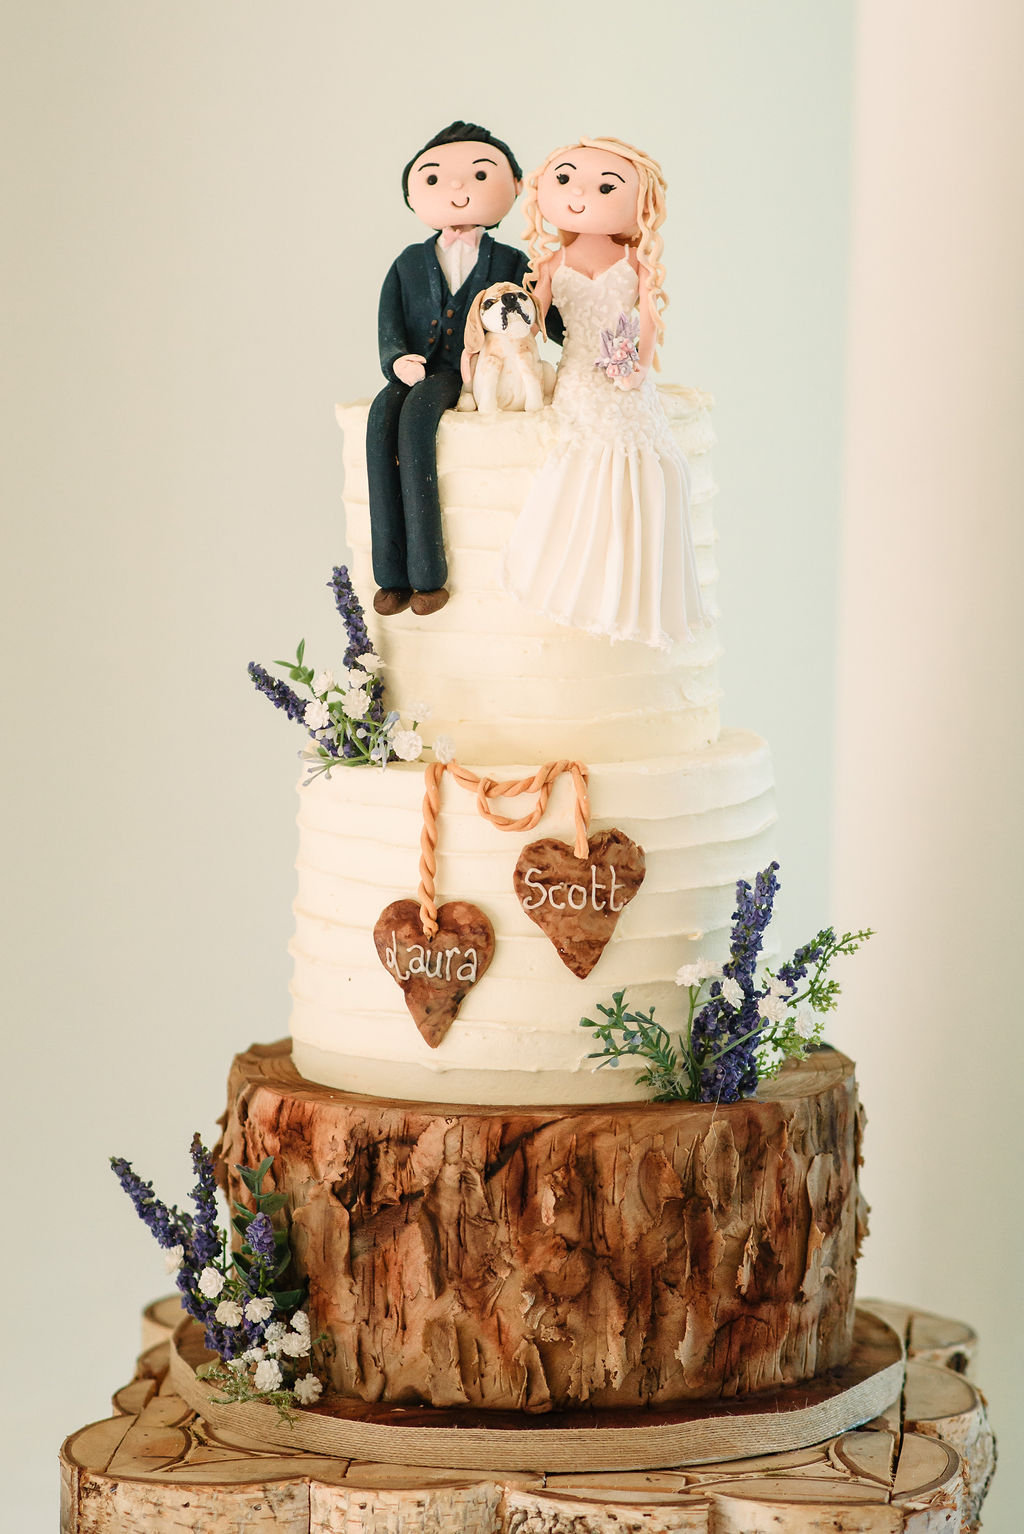 Wedding cake with bride, groom and their beagle for their spring wedding